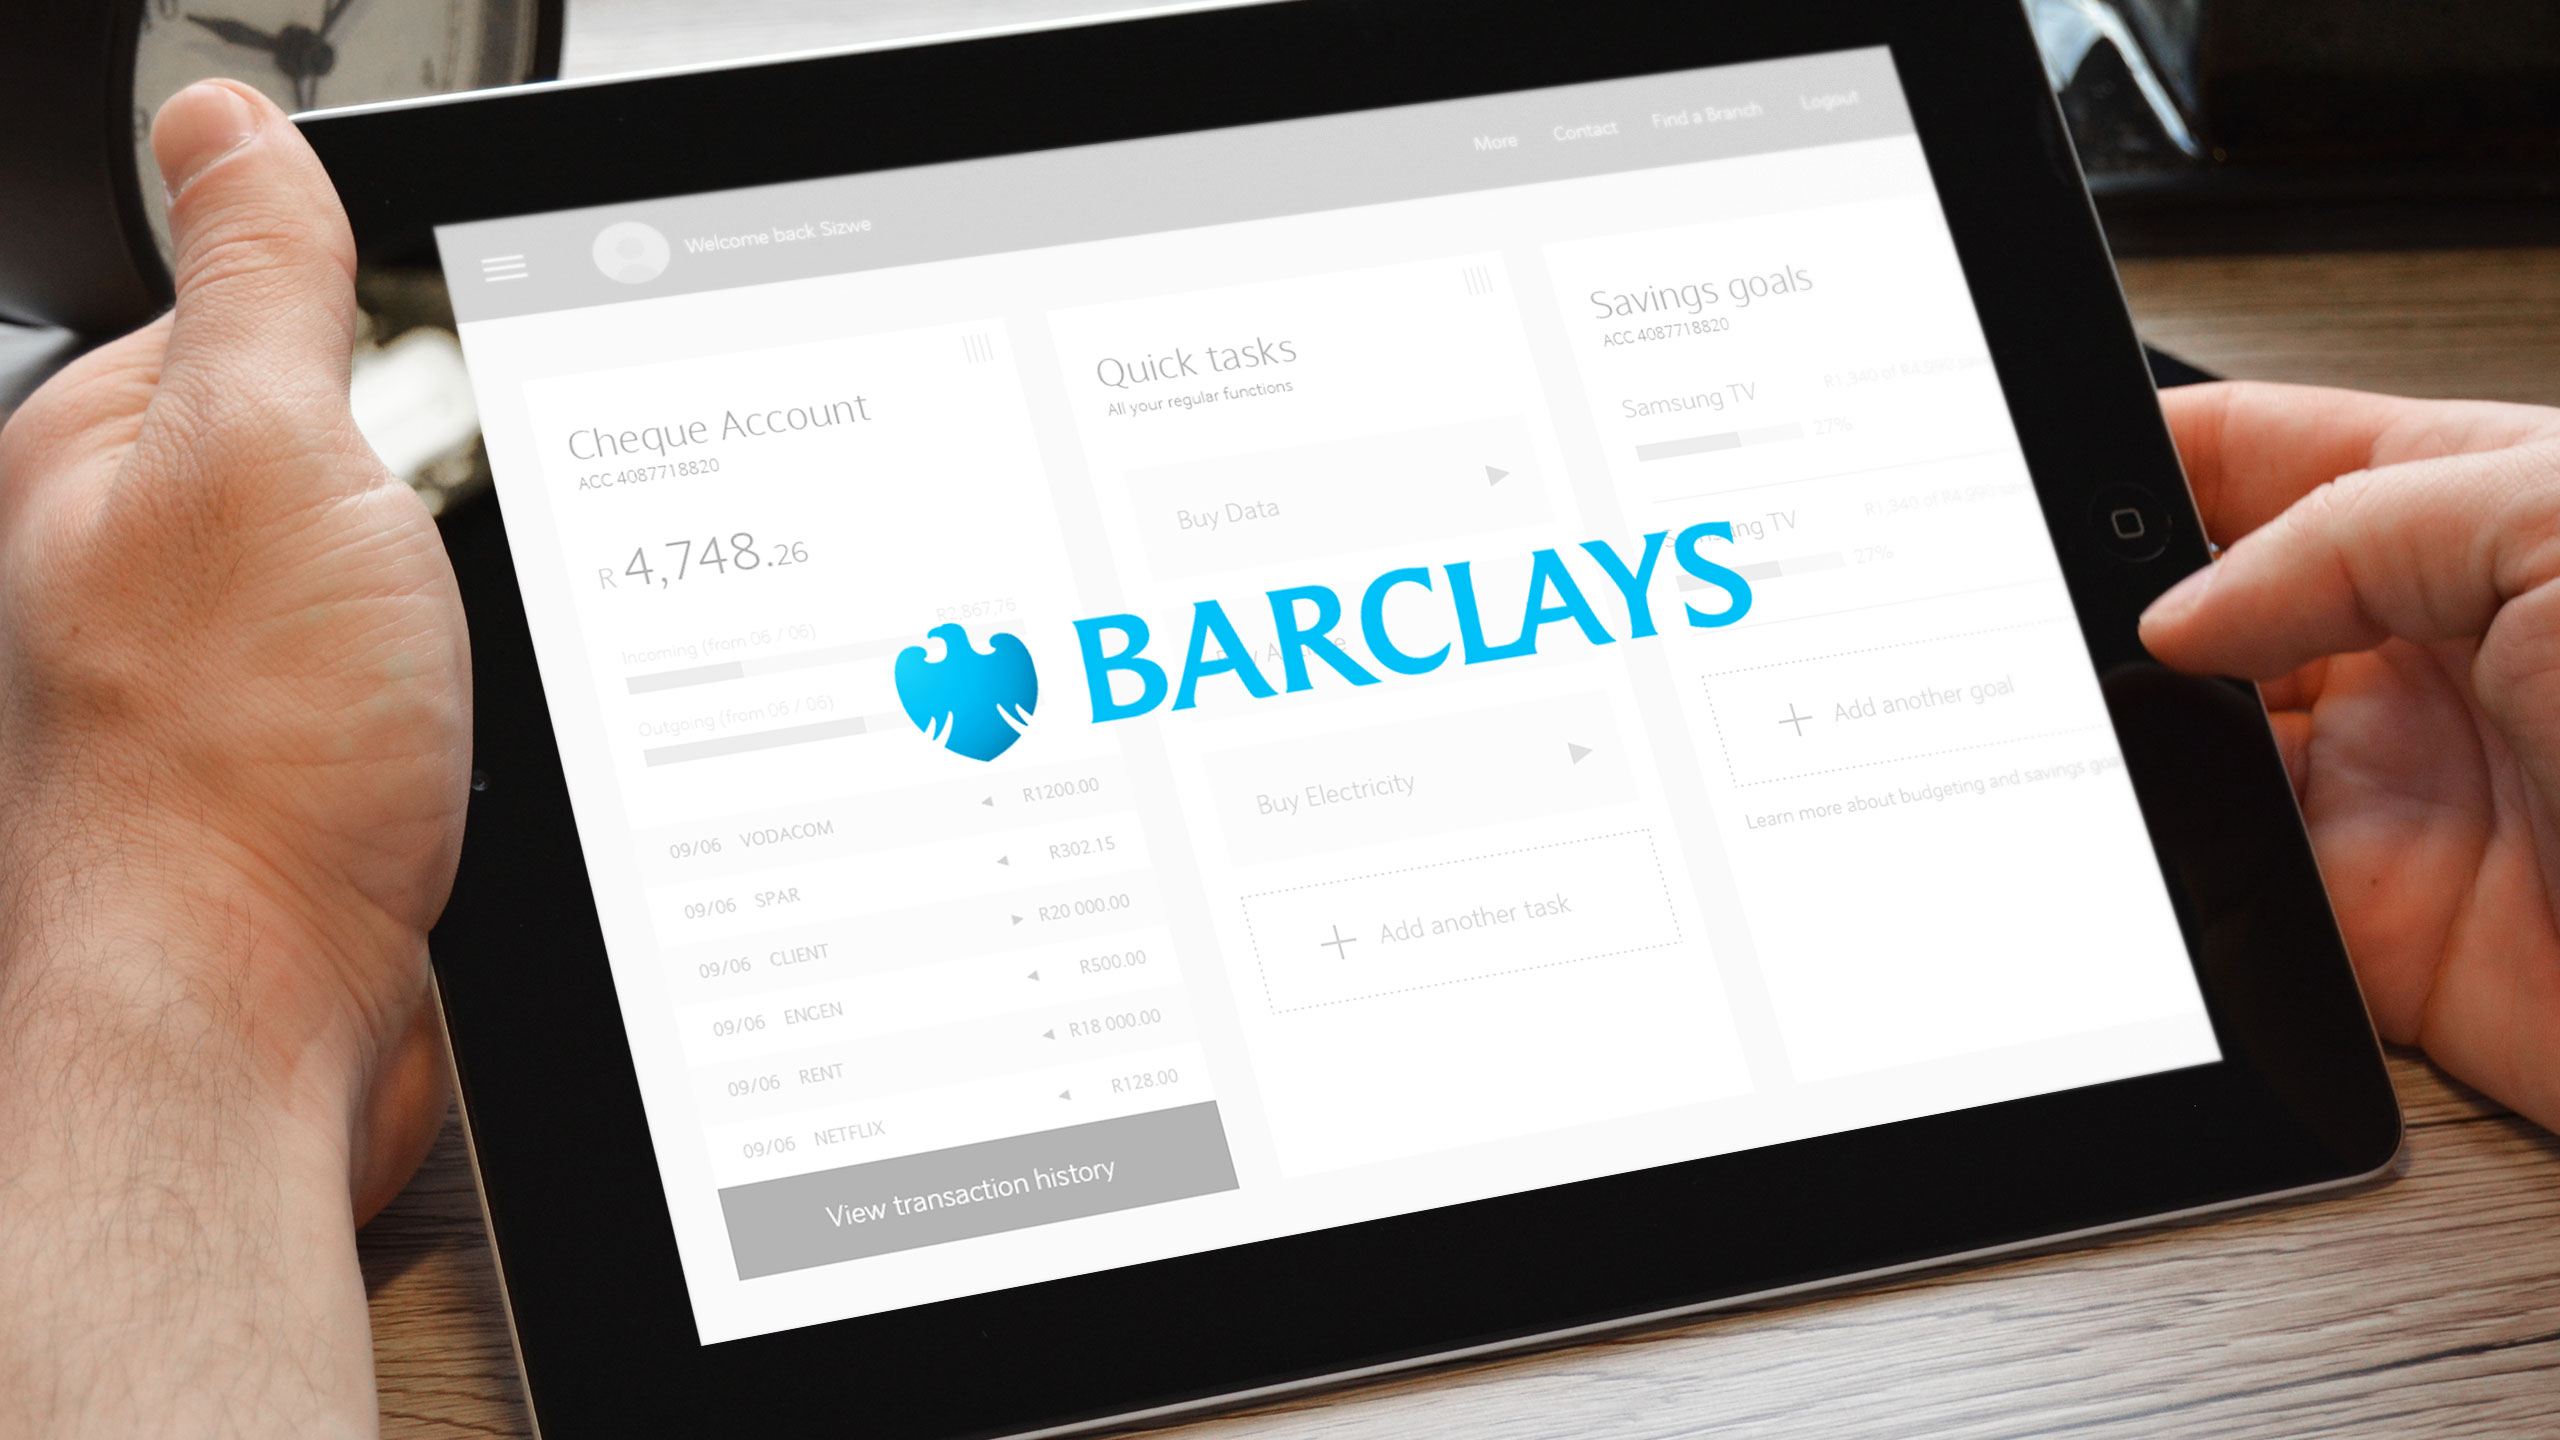 Barclays Tablet Banking Research